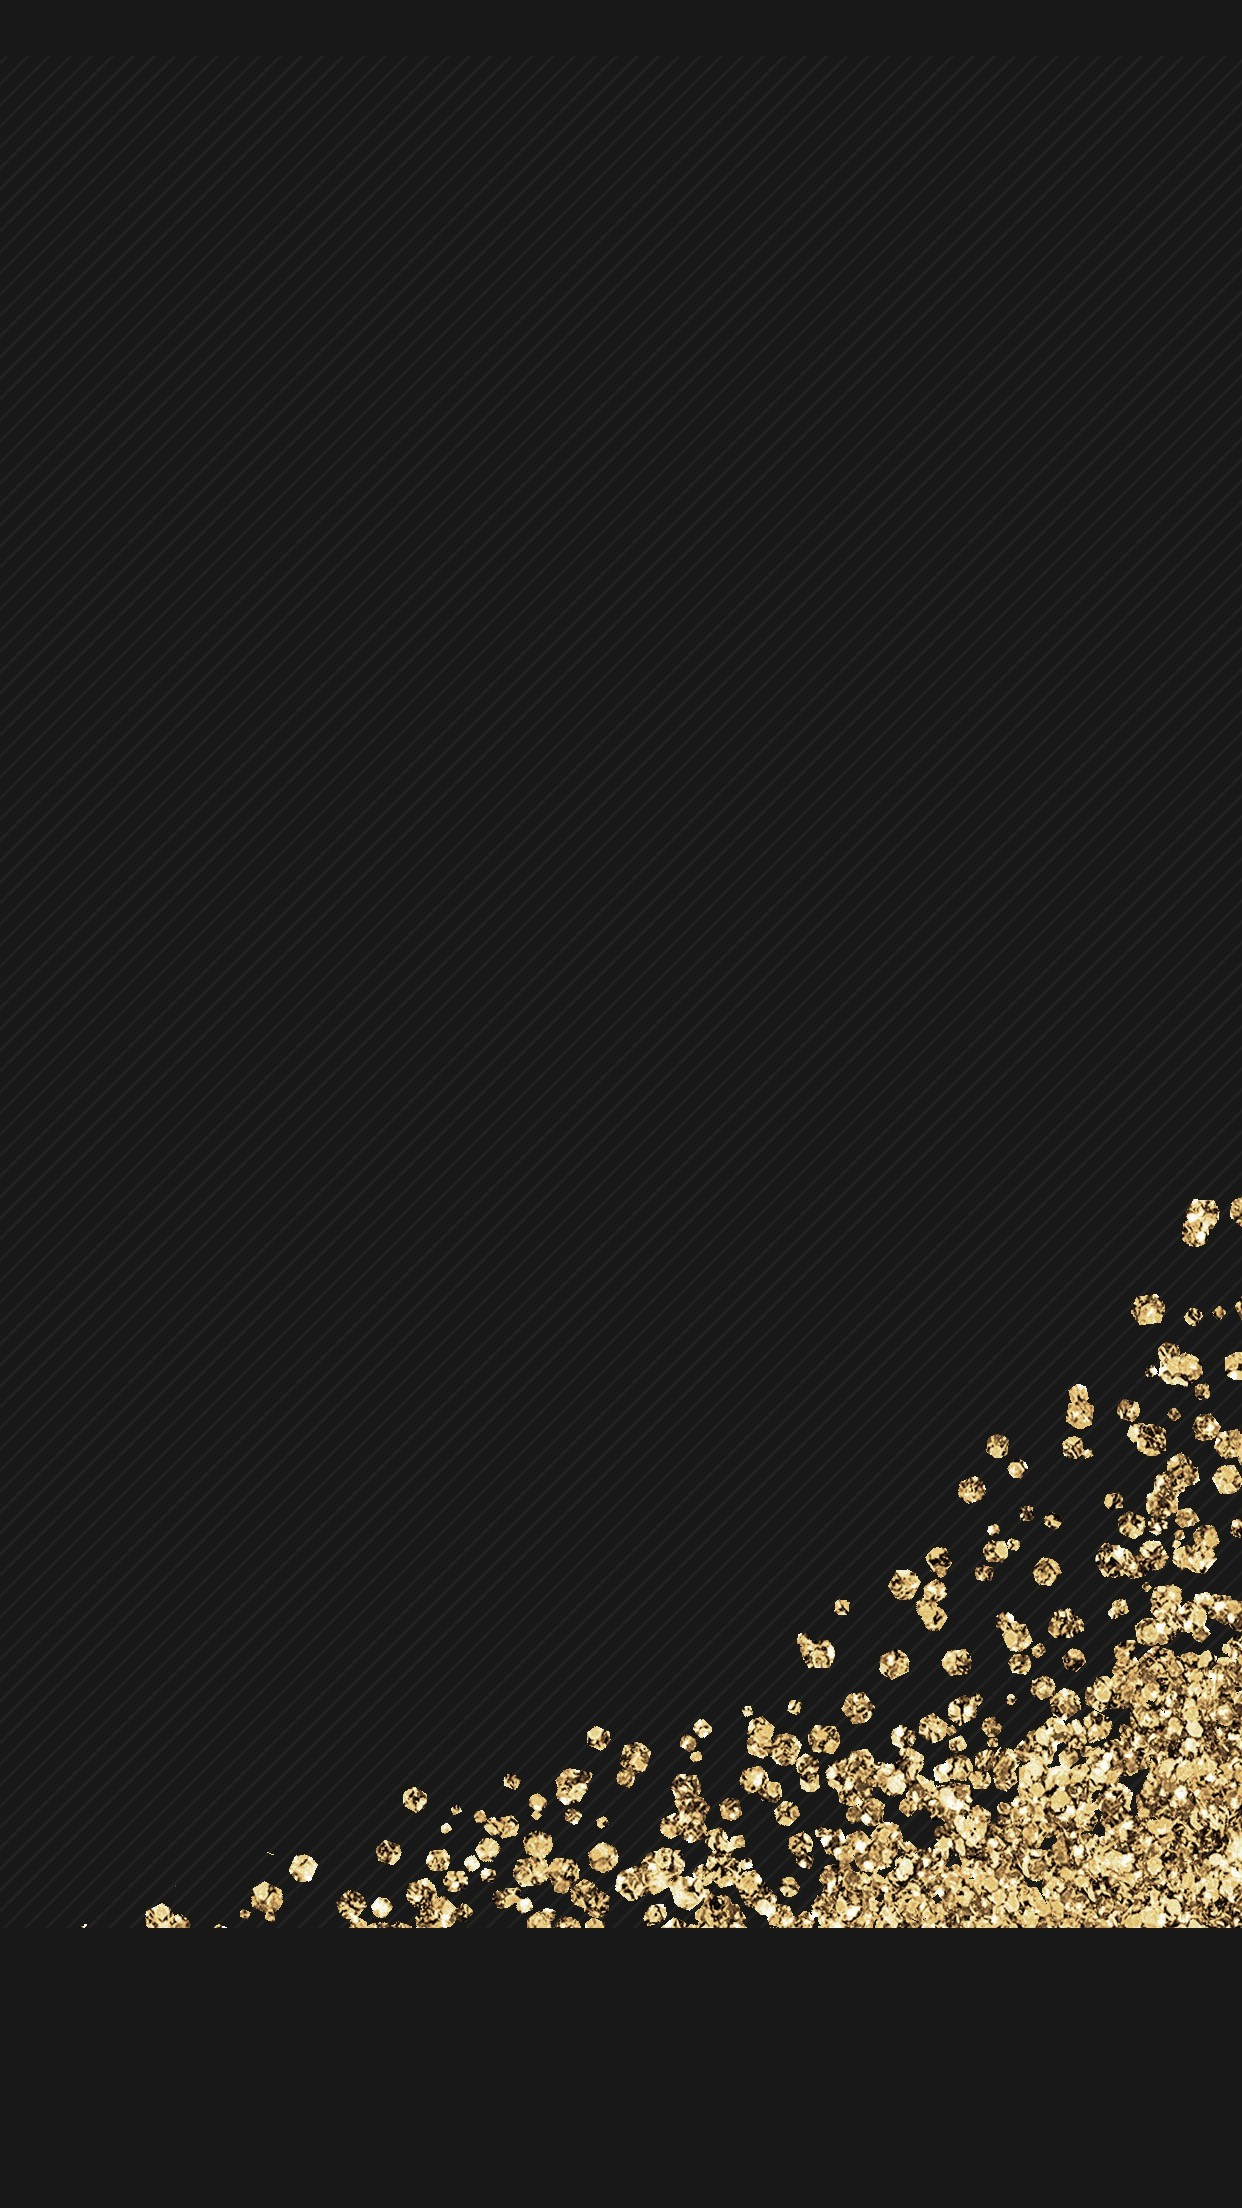 Black Glitter Wallpapers 39 Pictures